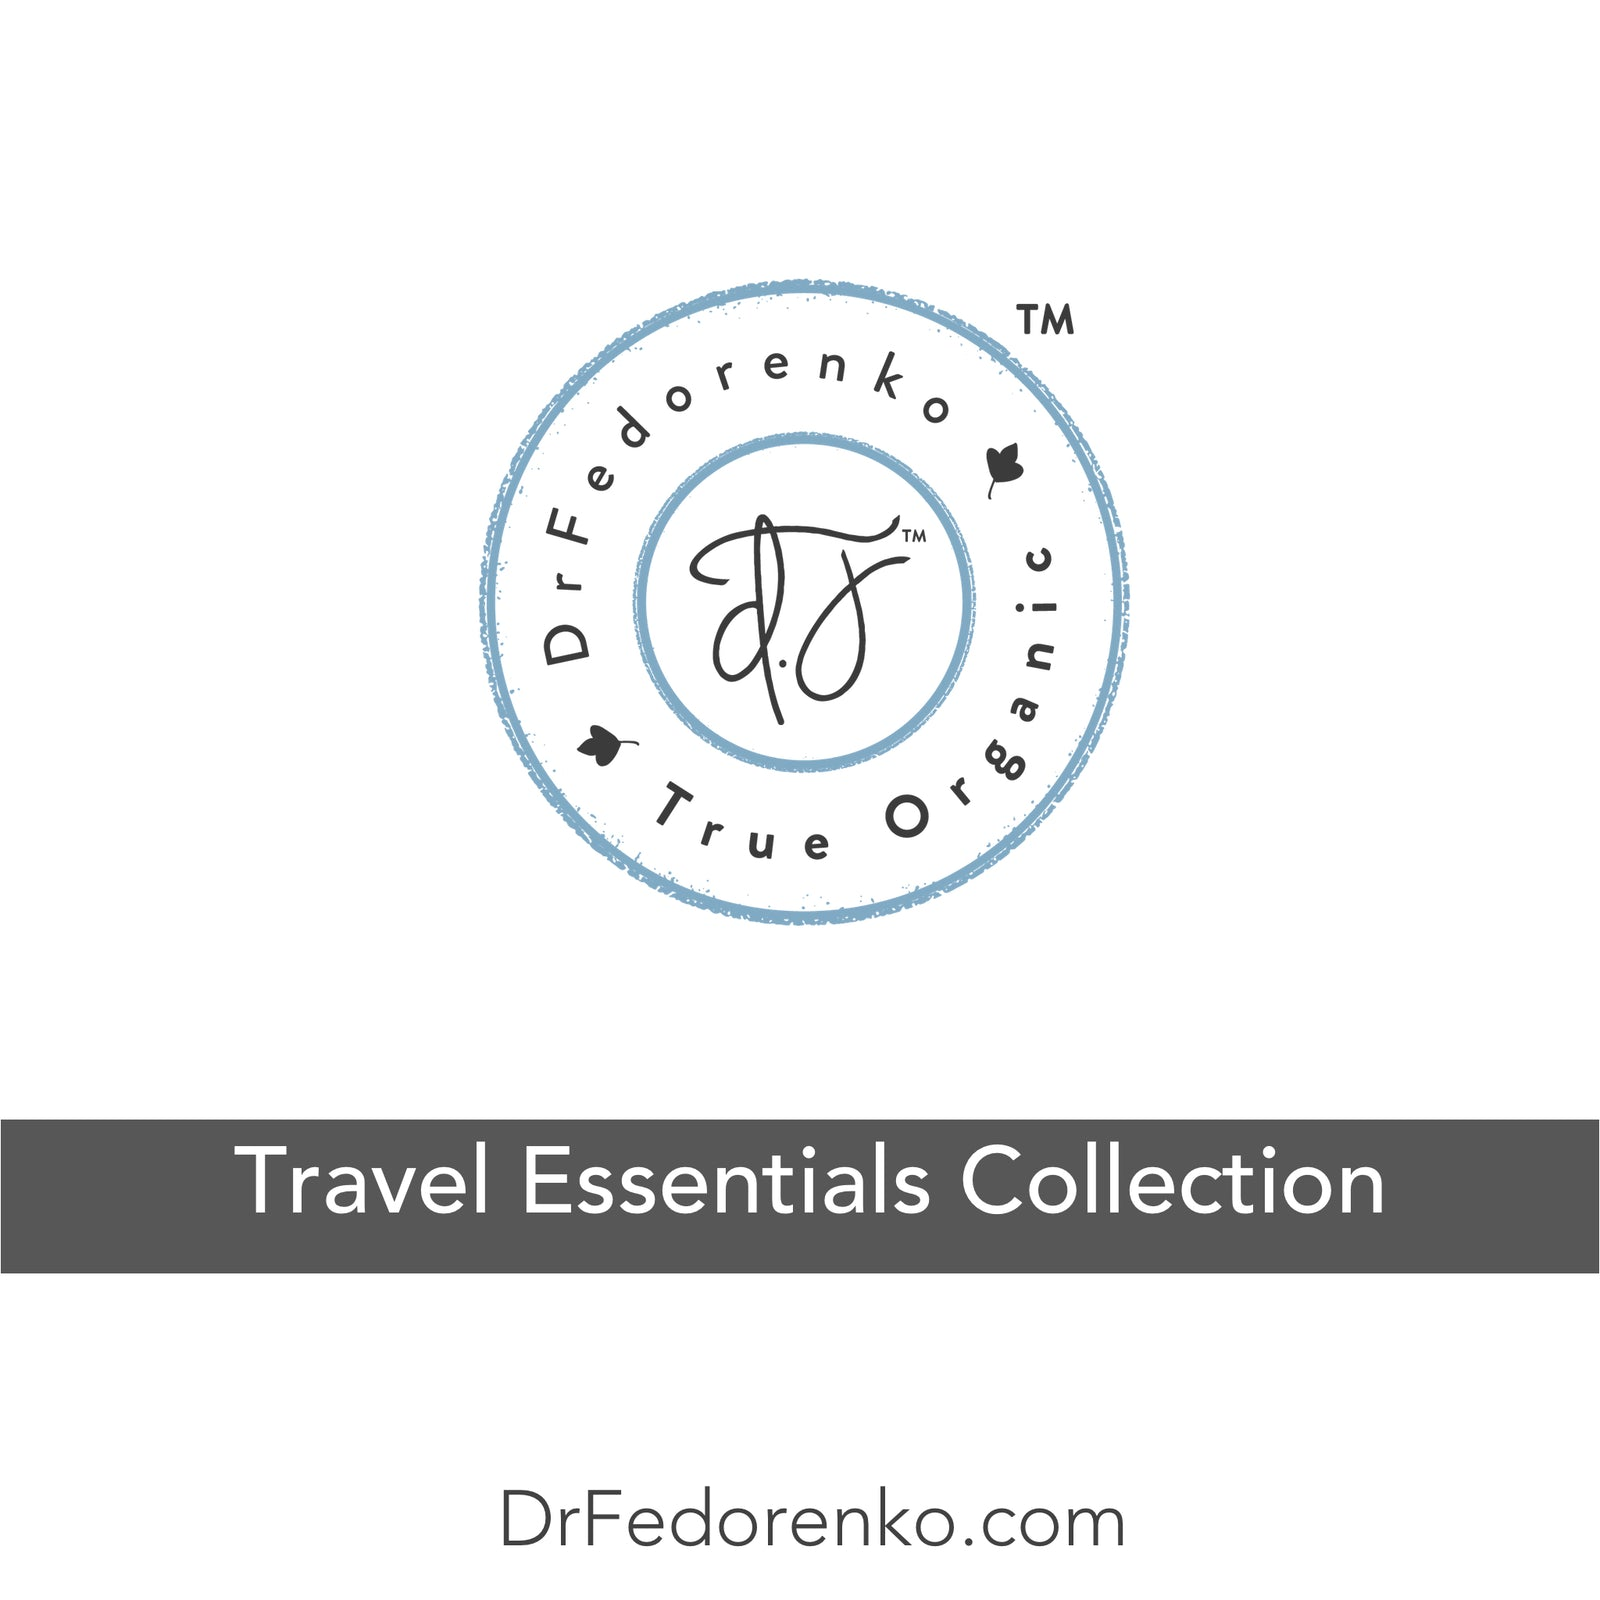 Travel Essentials Collection